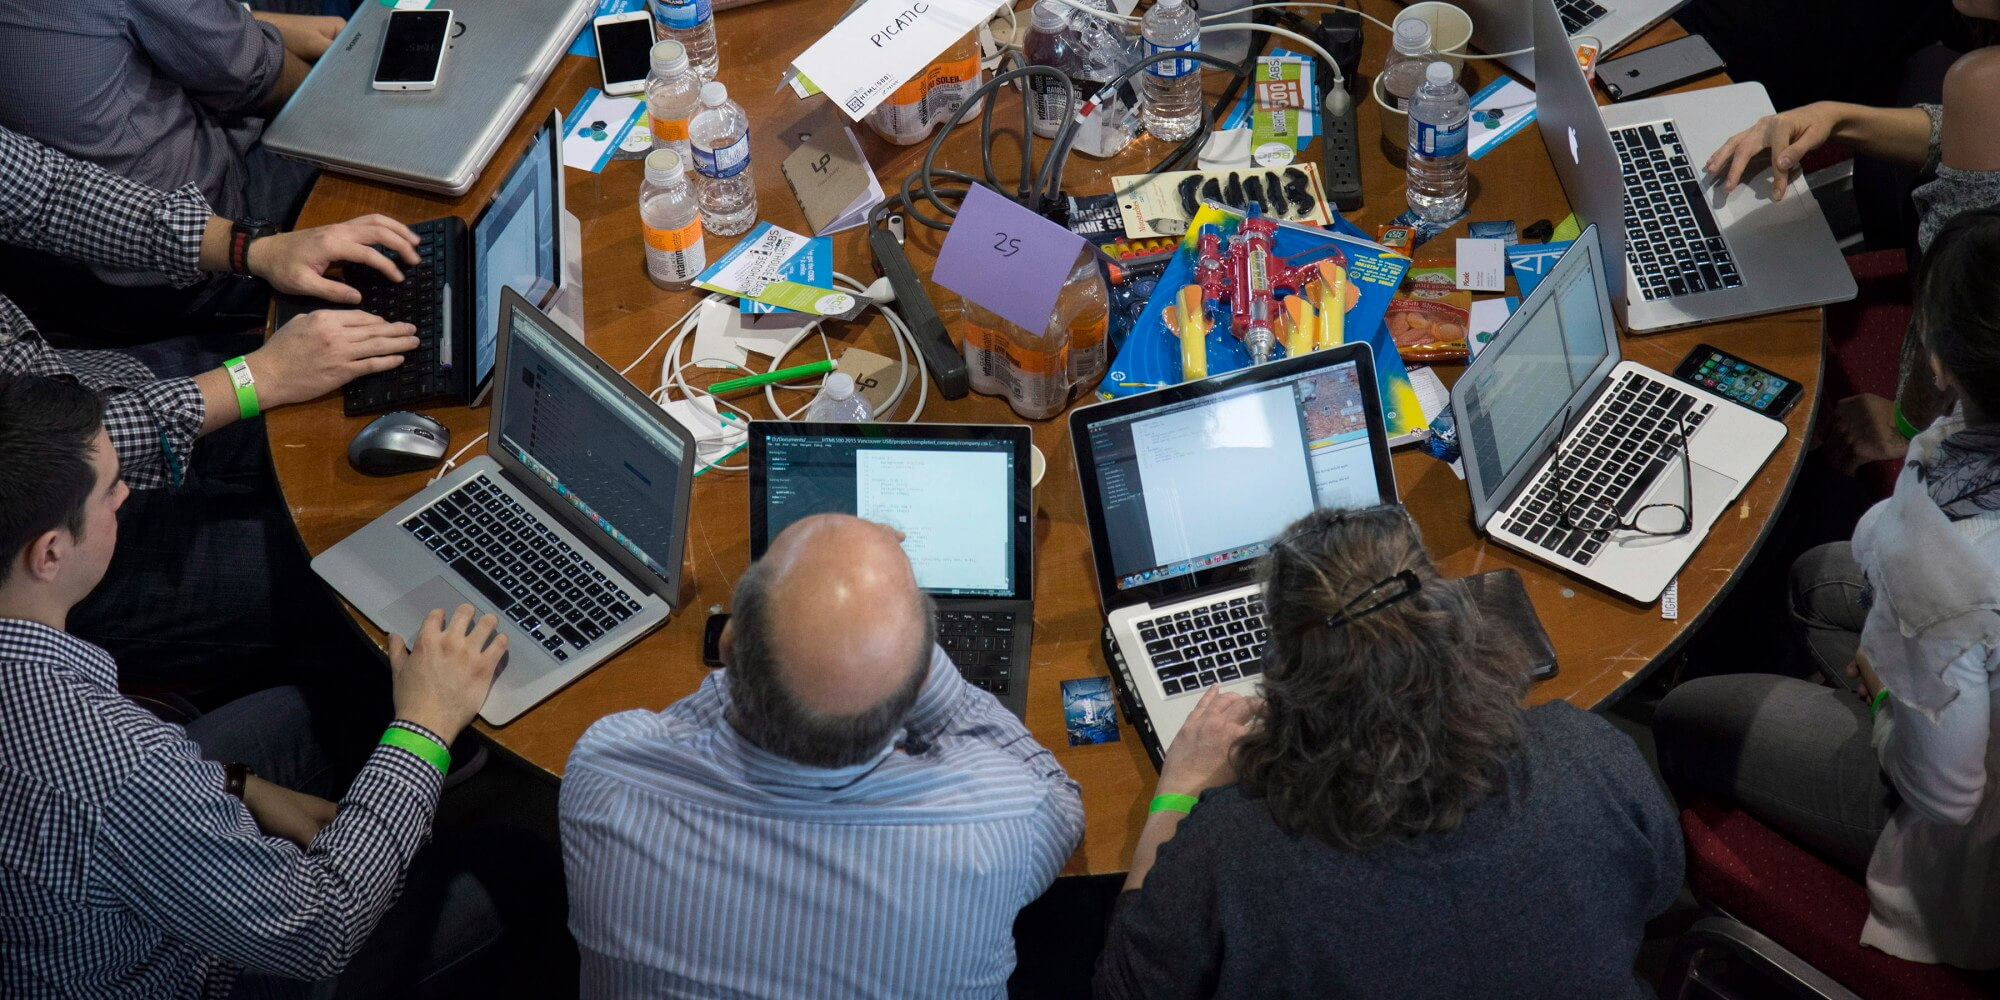 Participants take part in HTML500, a course which teaches computer coding skills, in Vancouver, B.C. Saturday, Jan. 24, 2015 HE CANADIAN PRESS/Jonathan Hayward